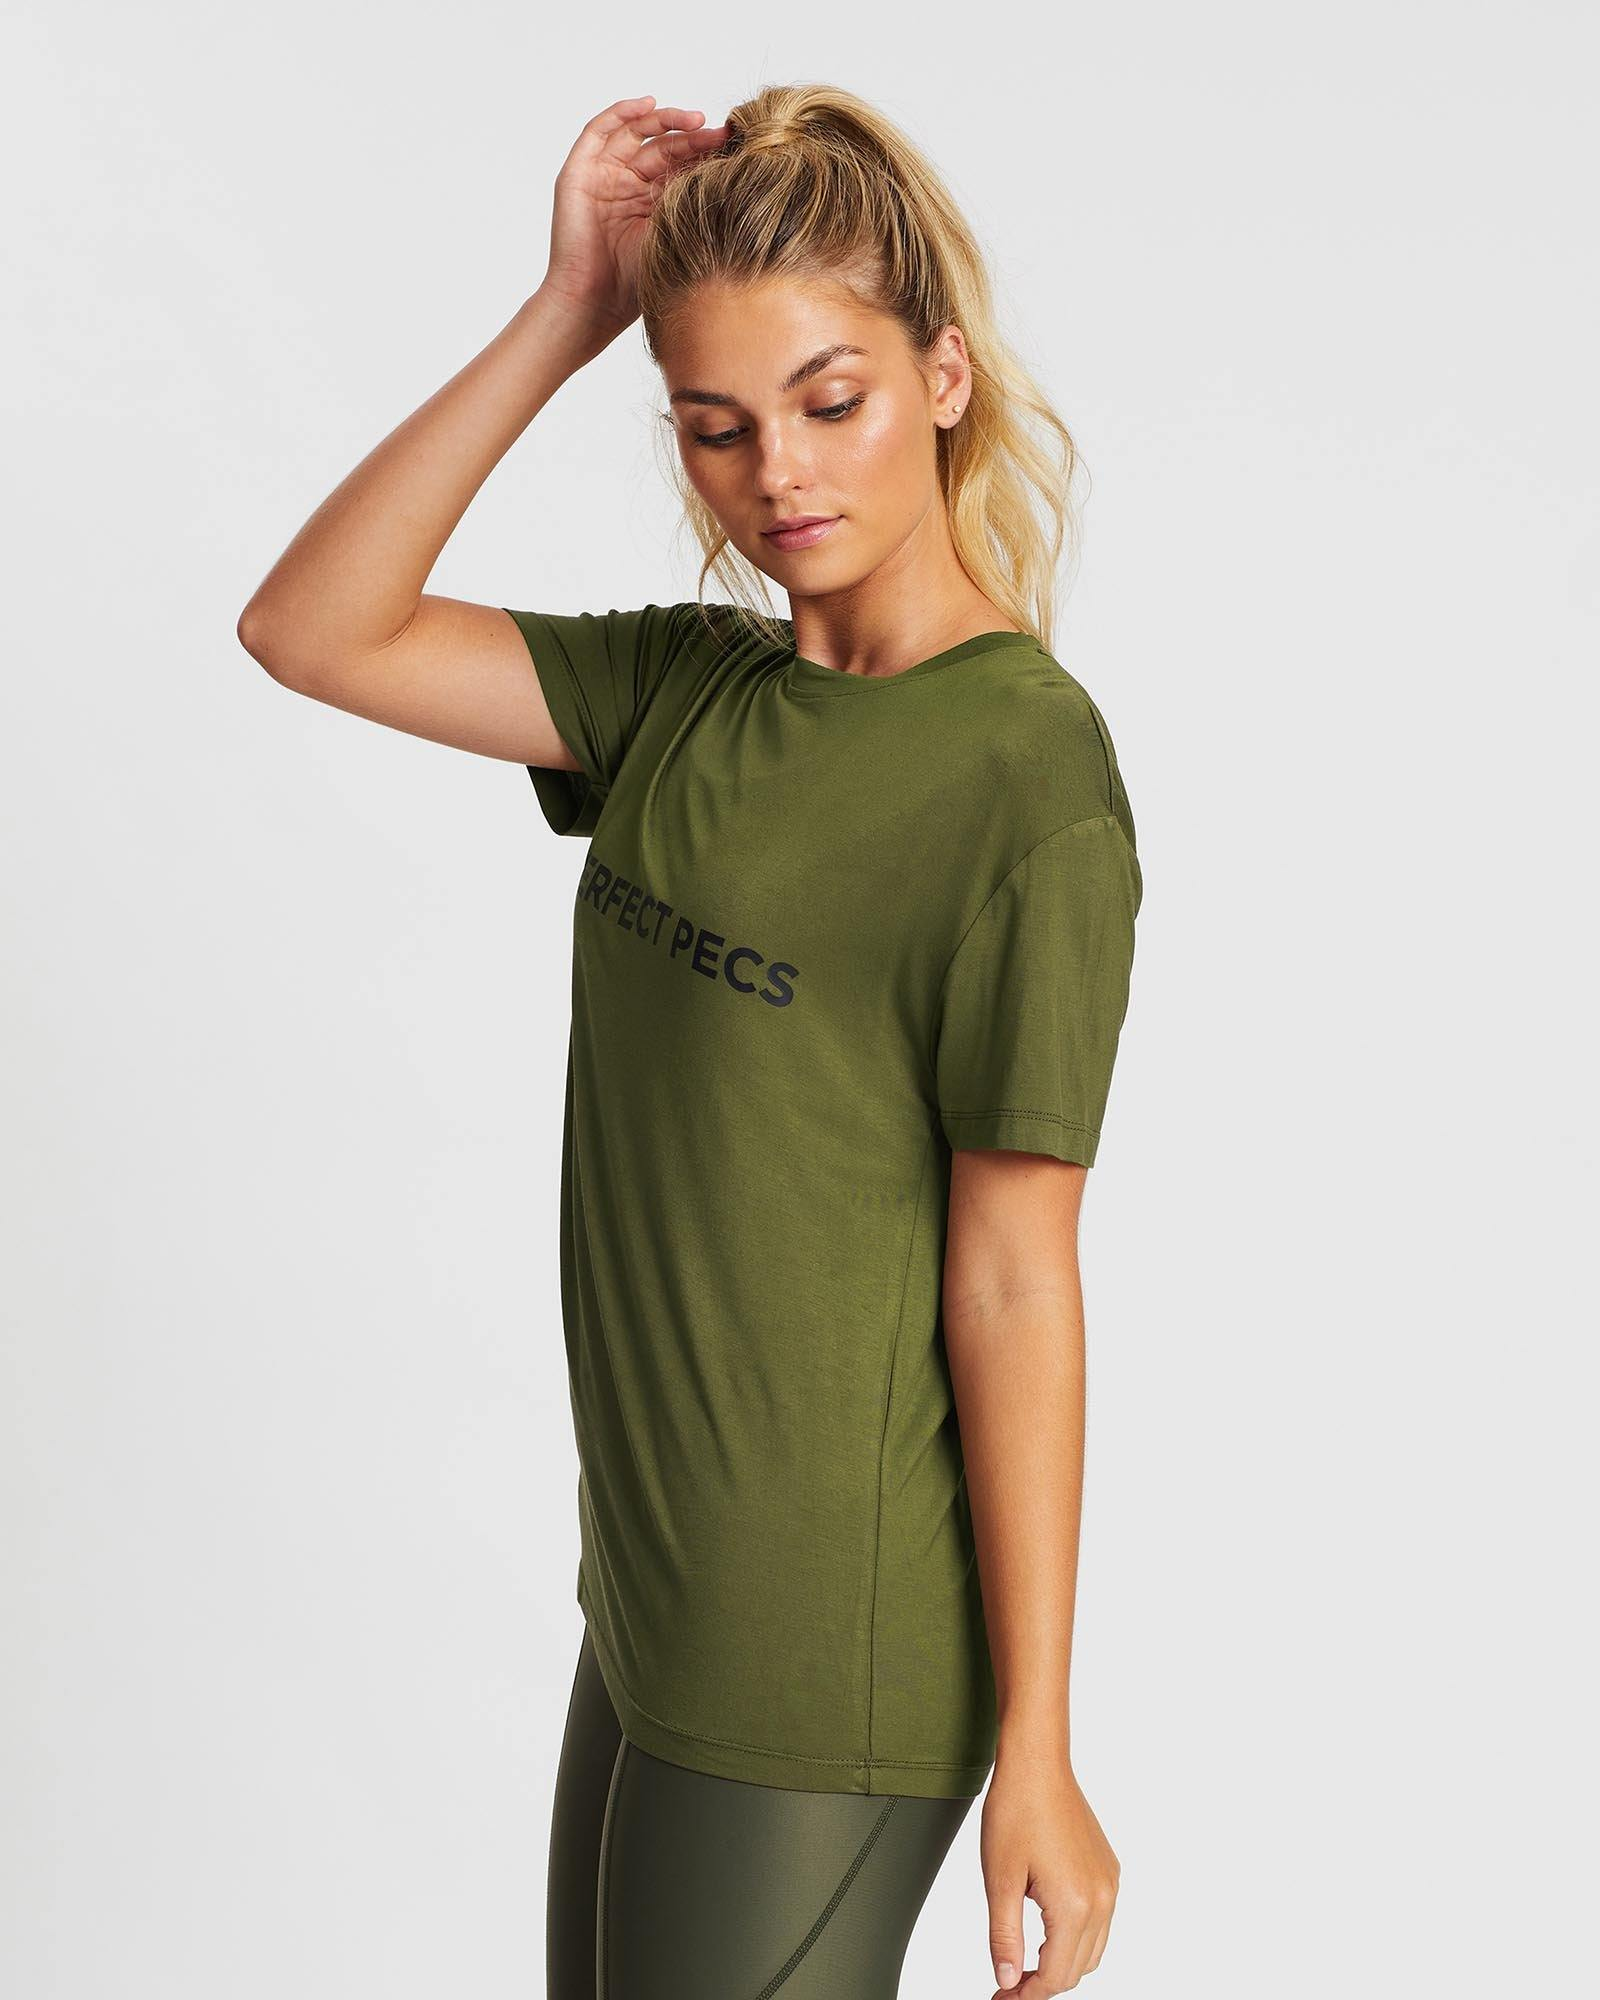 Sergeant Olive Scapulae T-Shirt - More Body